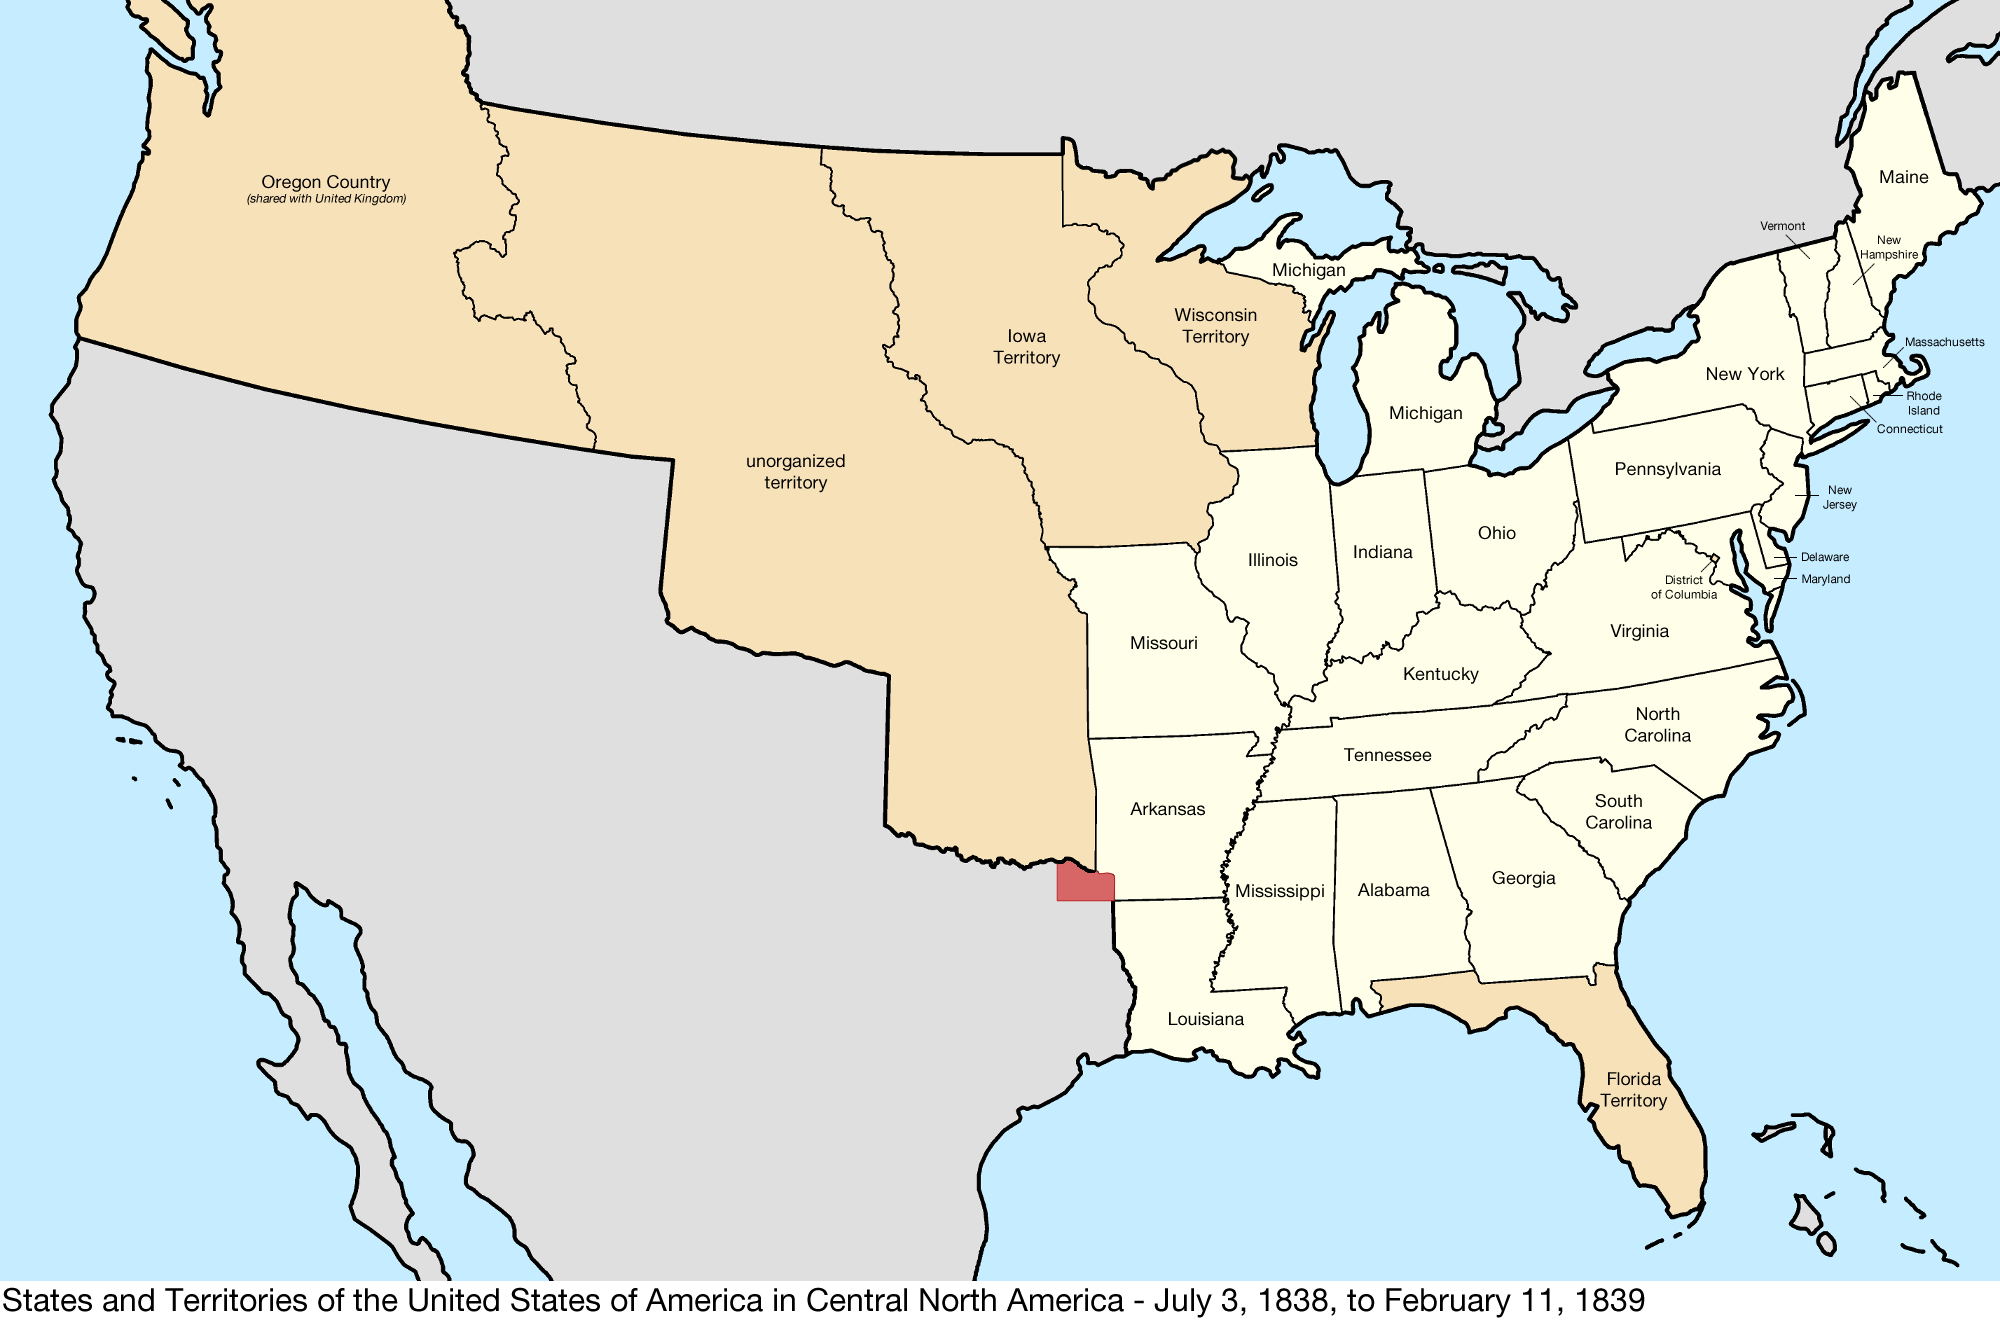 North America Time Zone Map OnTimeZonecom Time Zones For The USA - Map of usa time zones and states